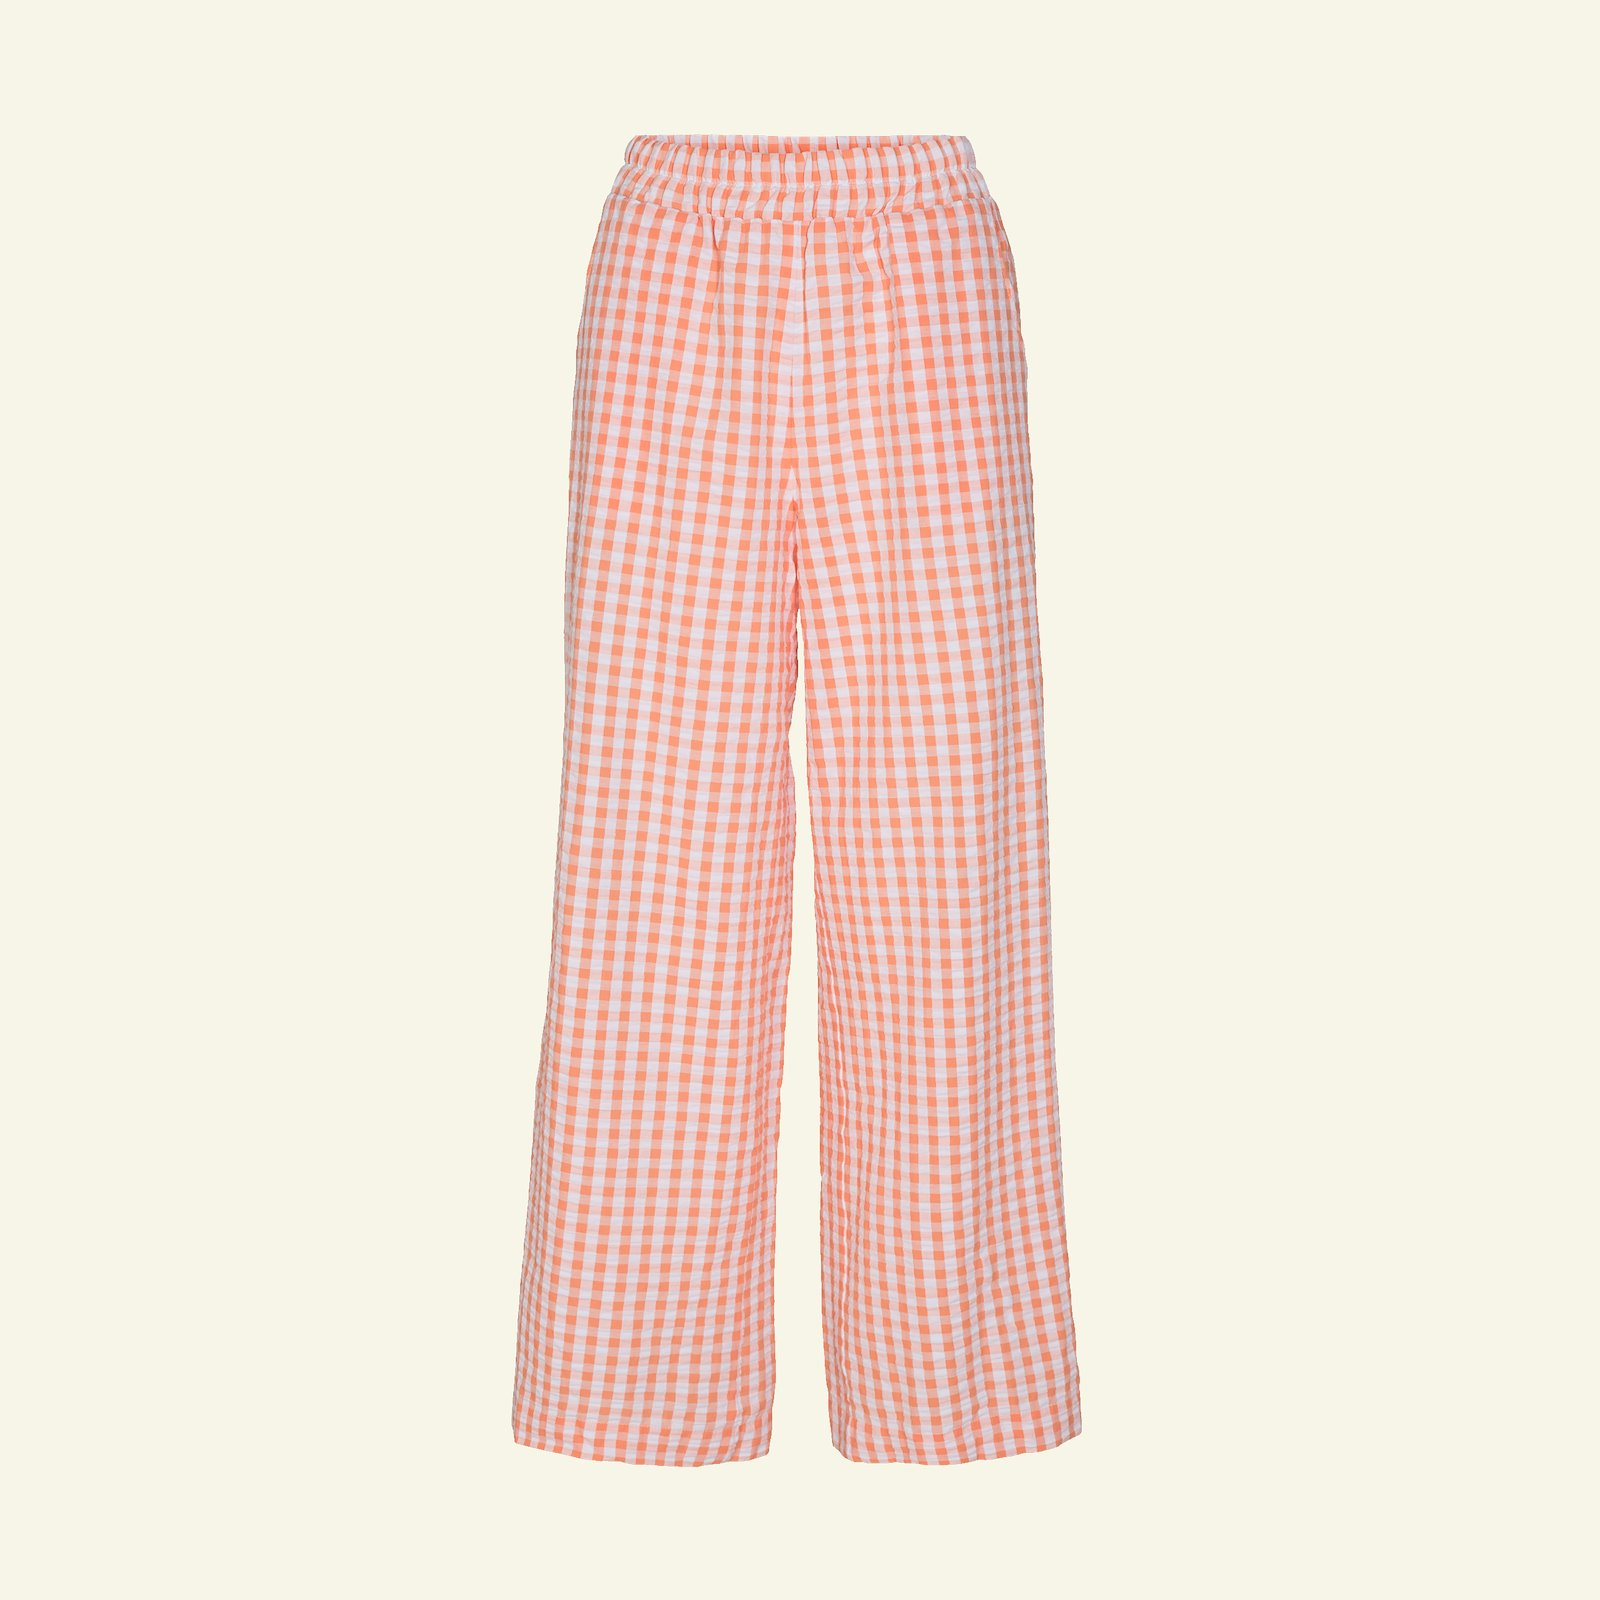 Wide trousers/shorts w. pockets, 42/14 p20051_580047_sskit